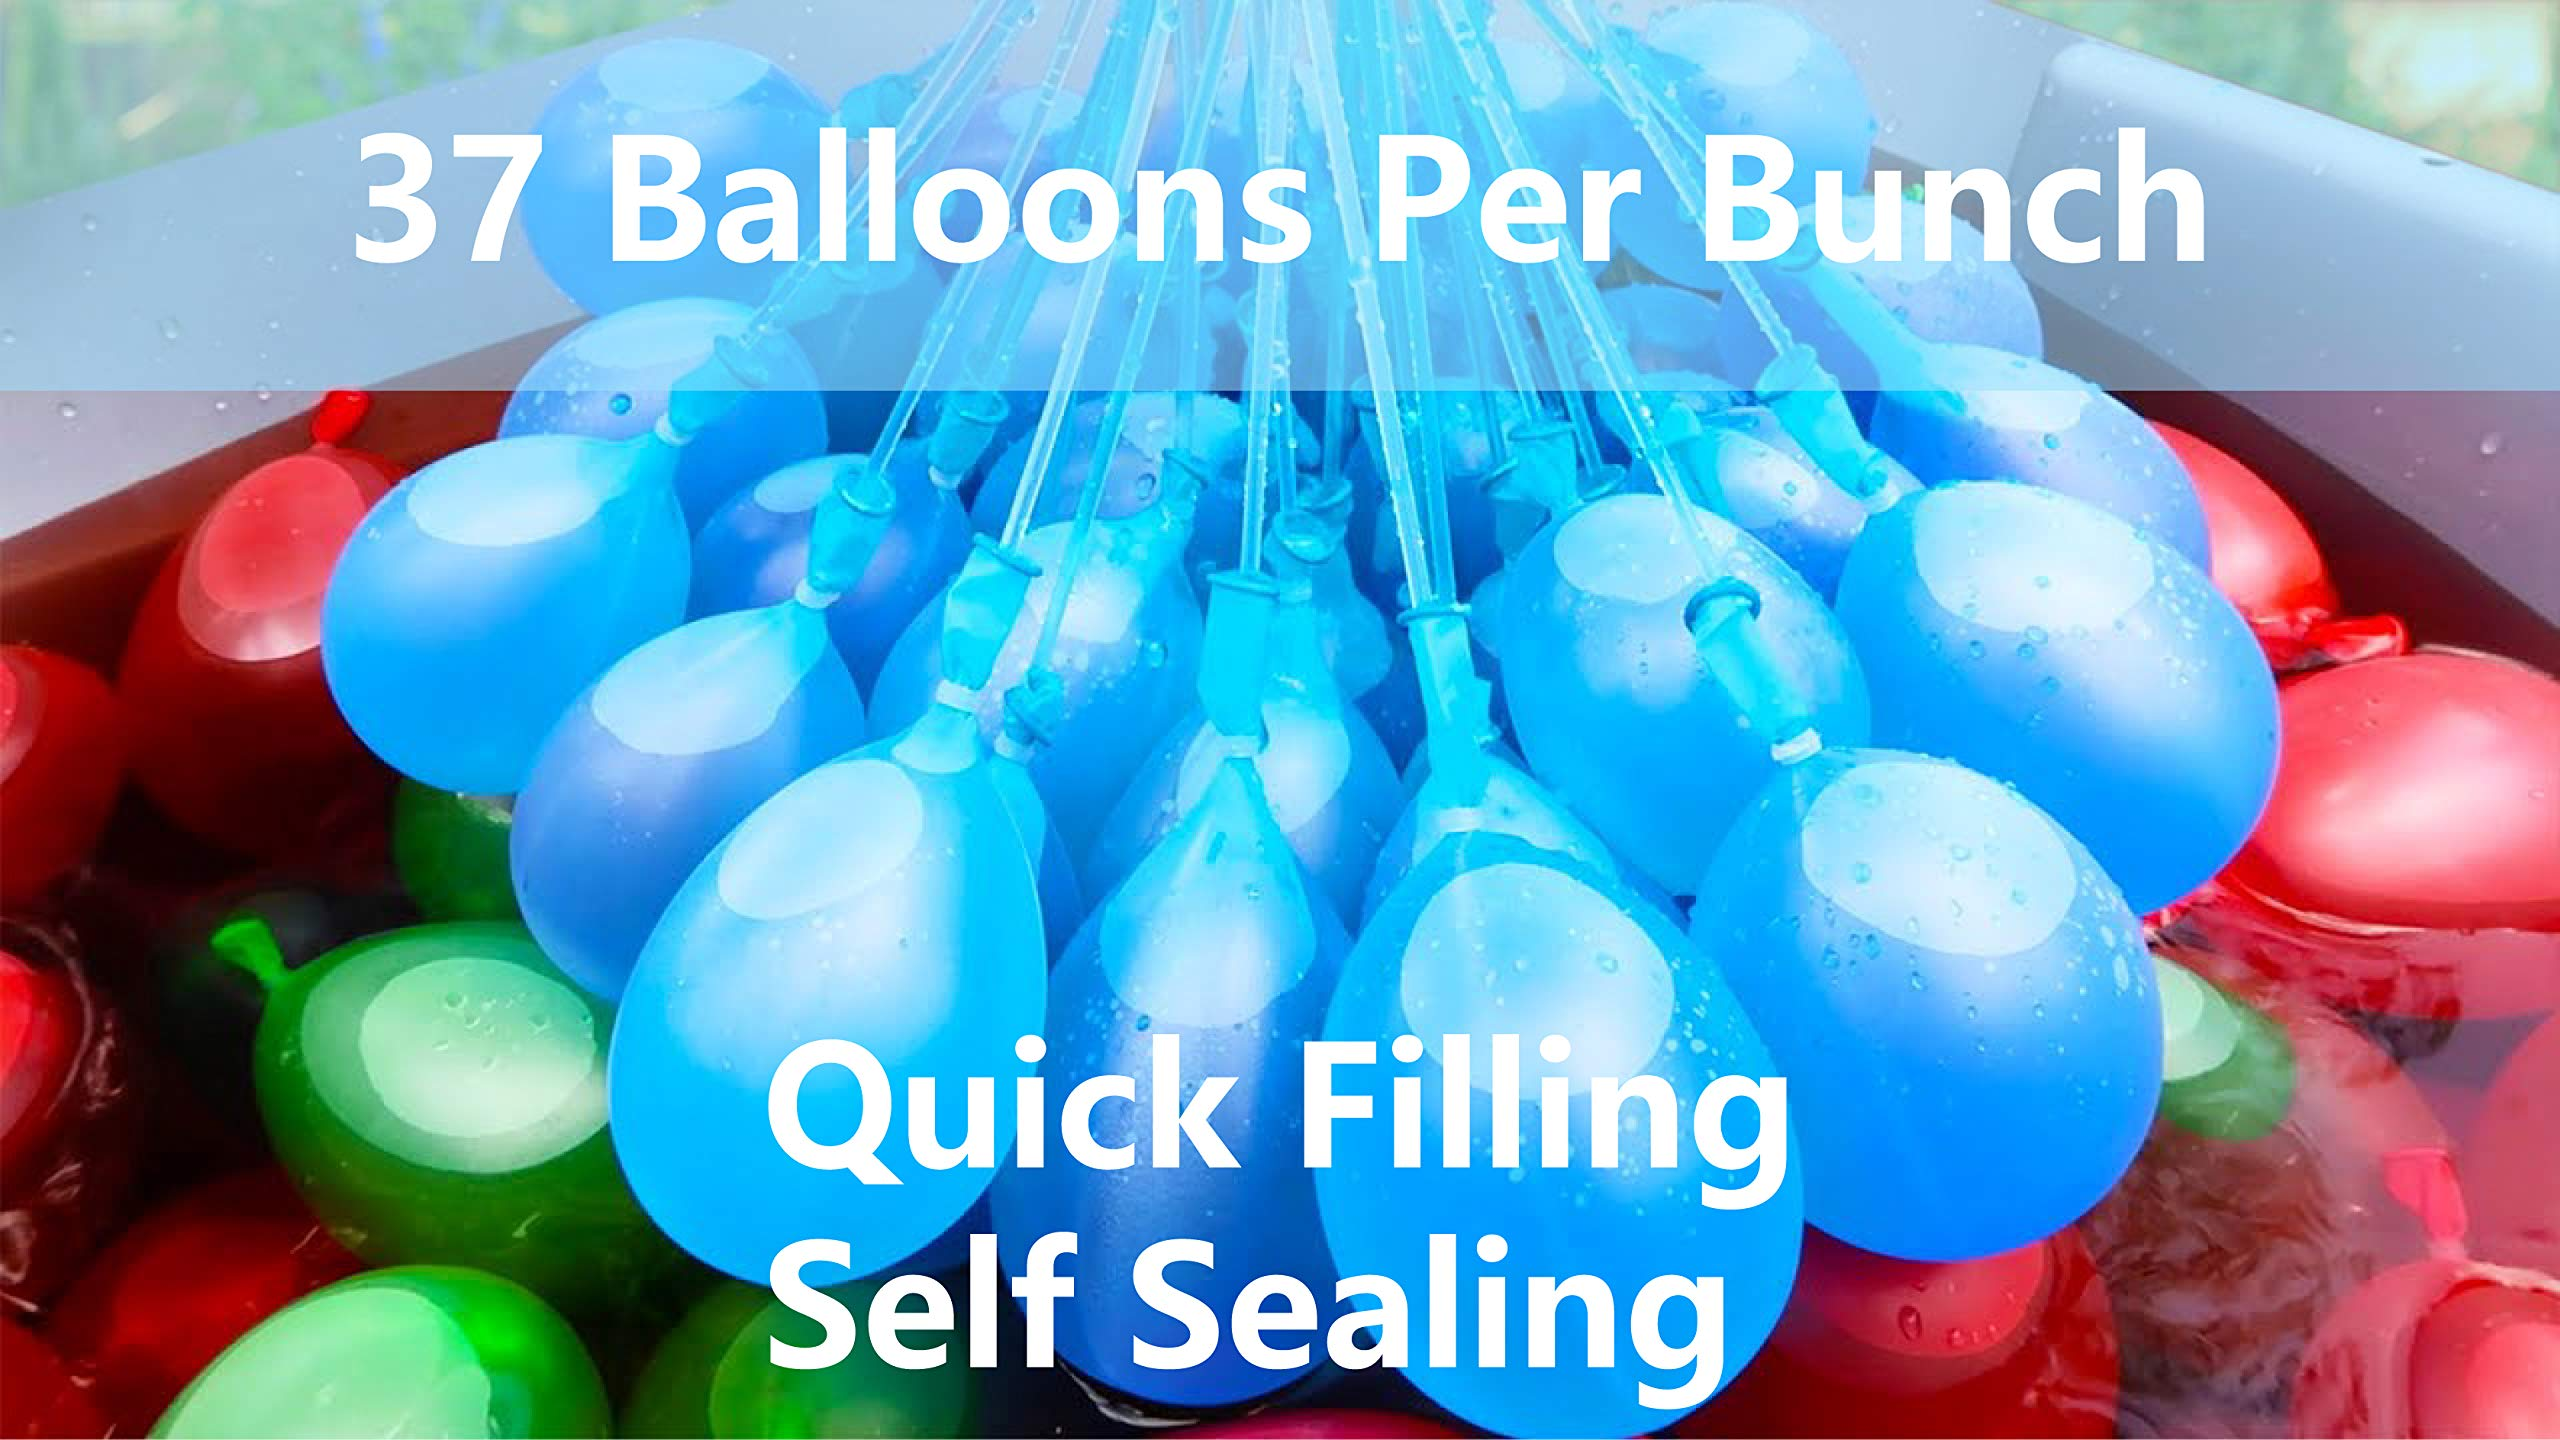 Water Balloons for Kids Girls Boys Balloons Set Party Games Quick Fill Water Balloons 594 Bunches Swimming Pool Outdoor Summer Fun A6 by Magic balloons (Image #2)